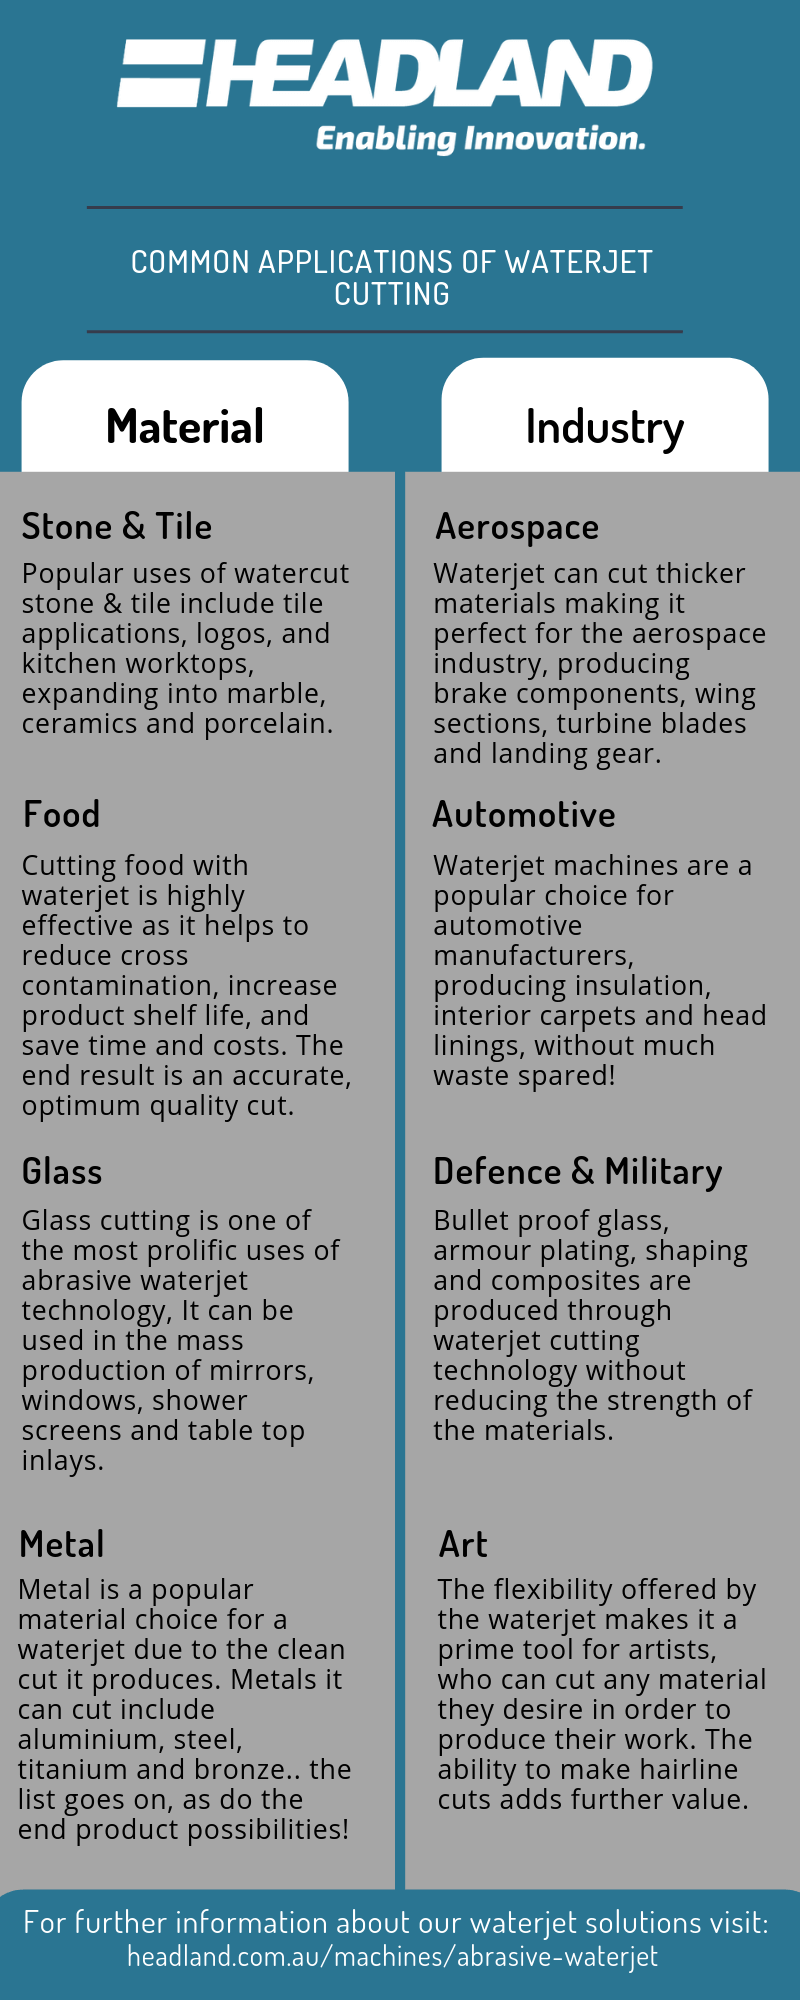 applications of waterjet cutting